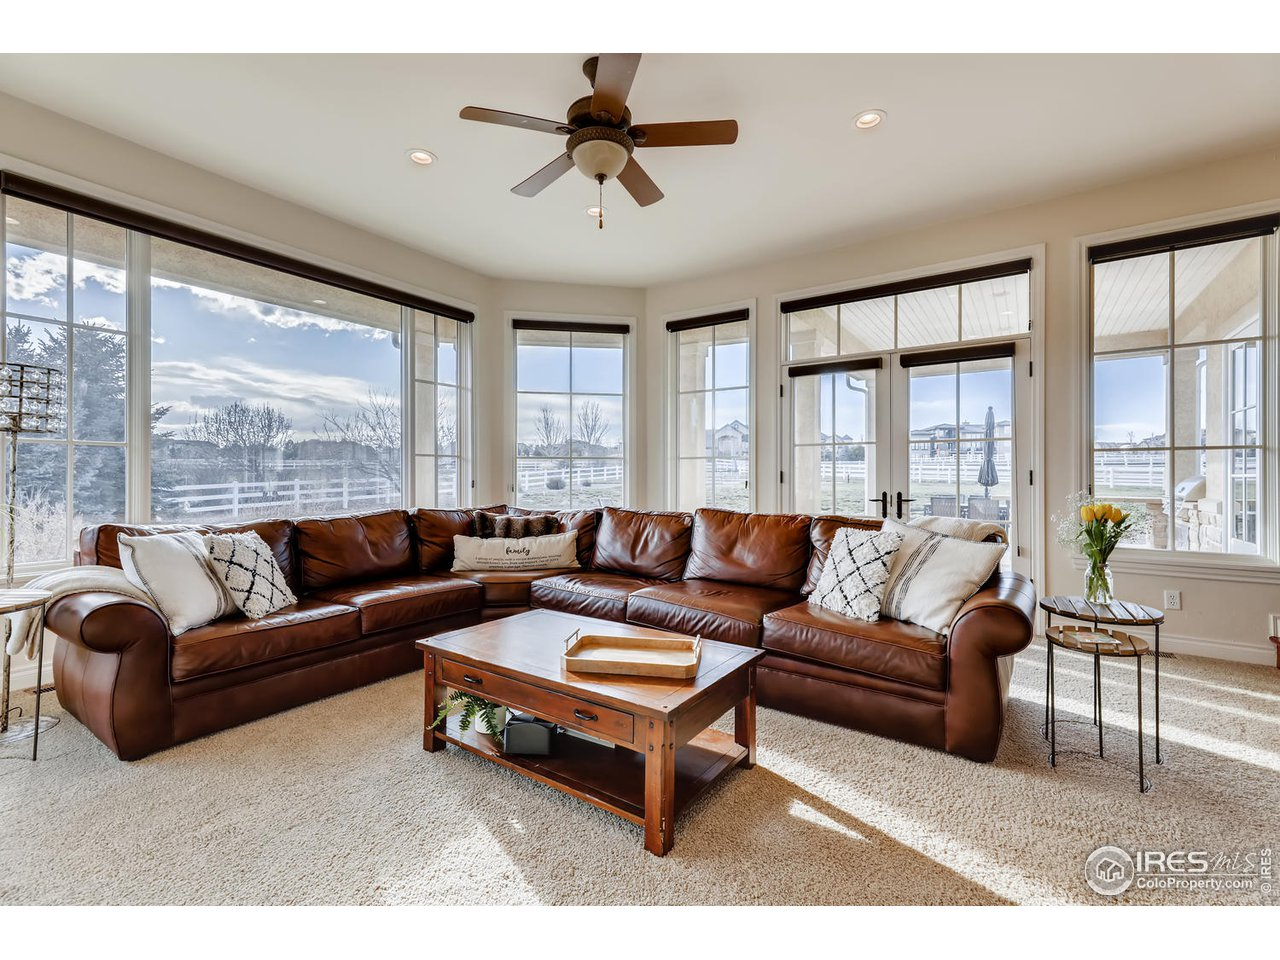 Family Room with serene views & patio access